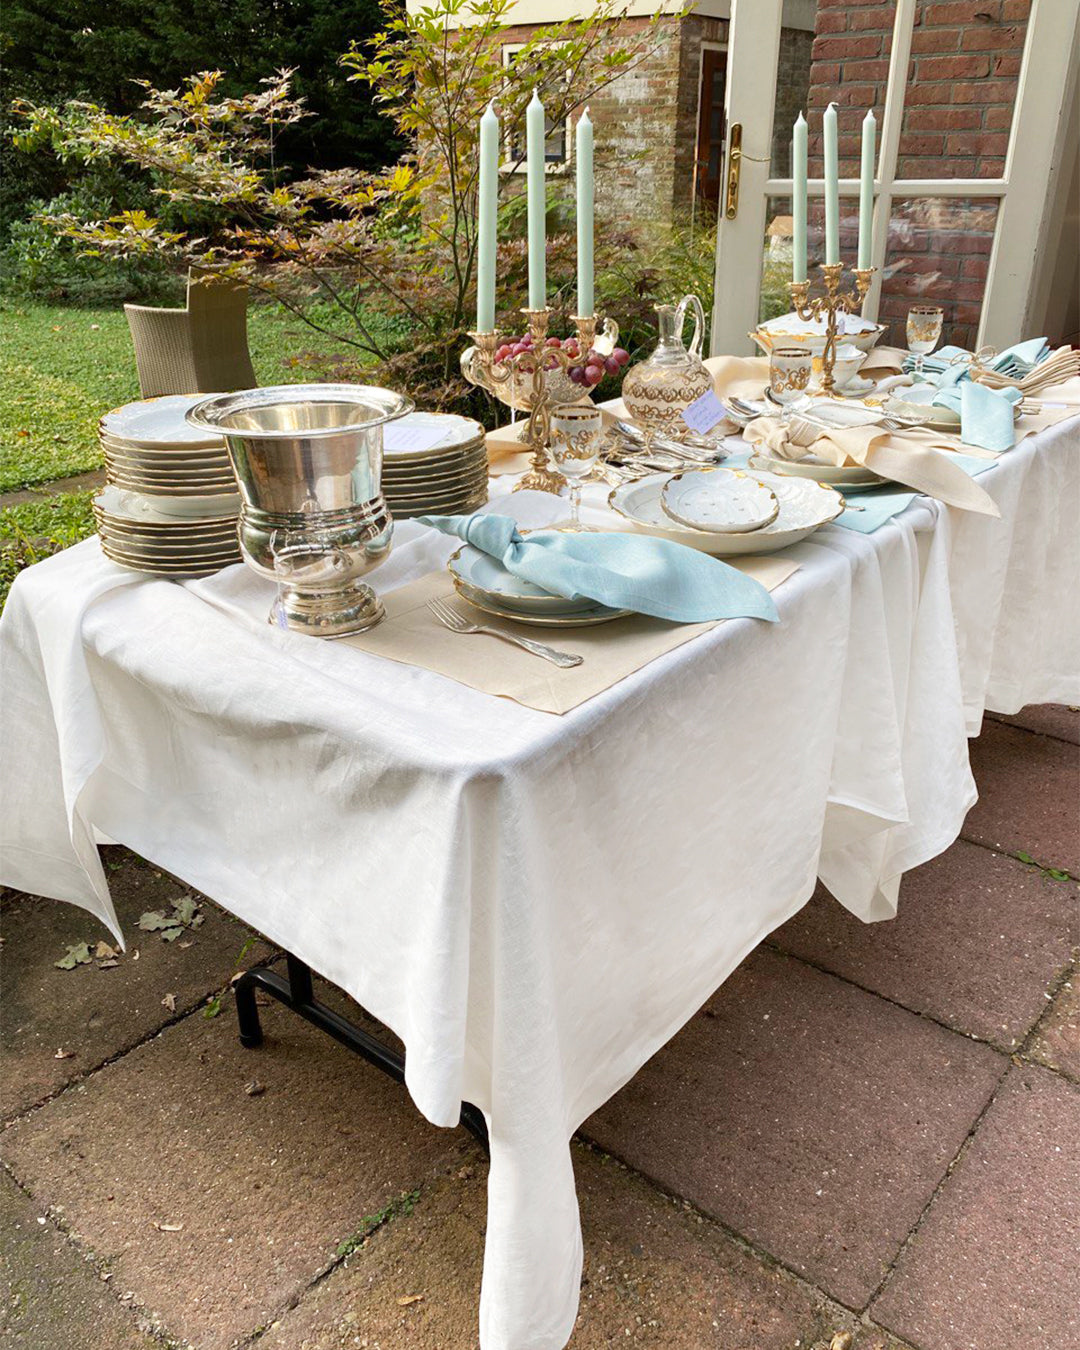 Tablecloth from white soft linen